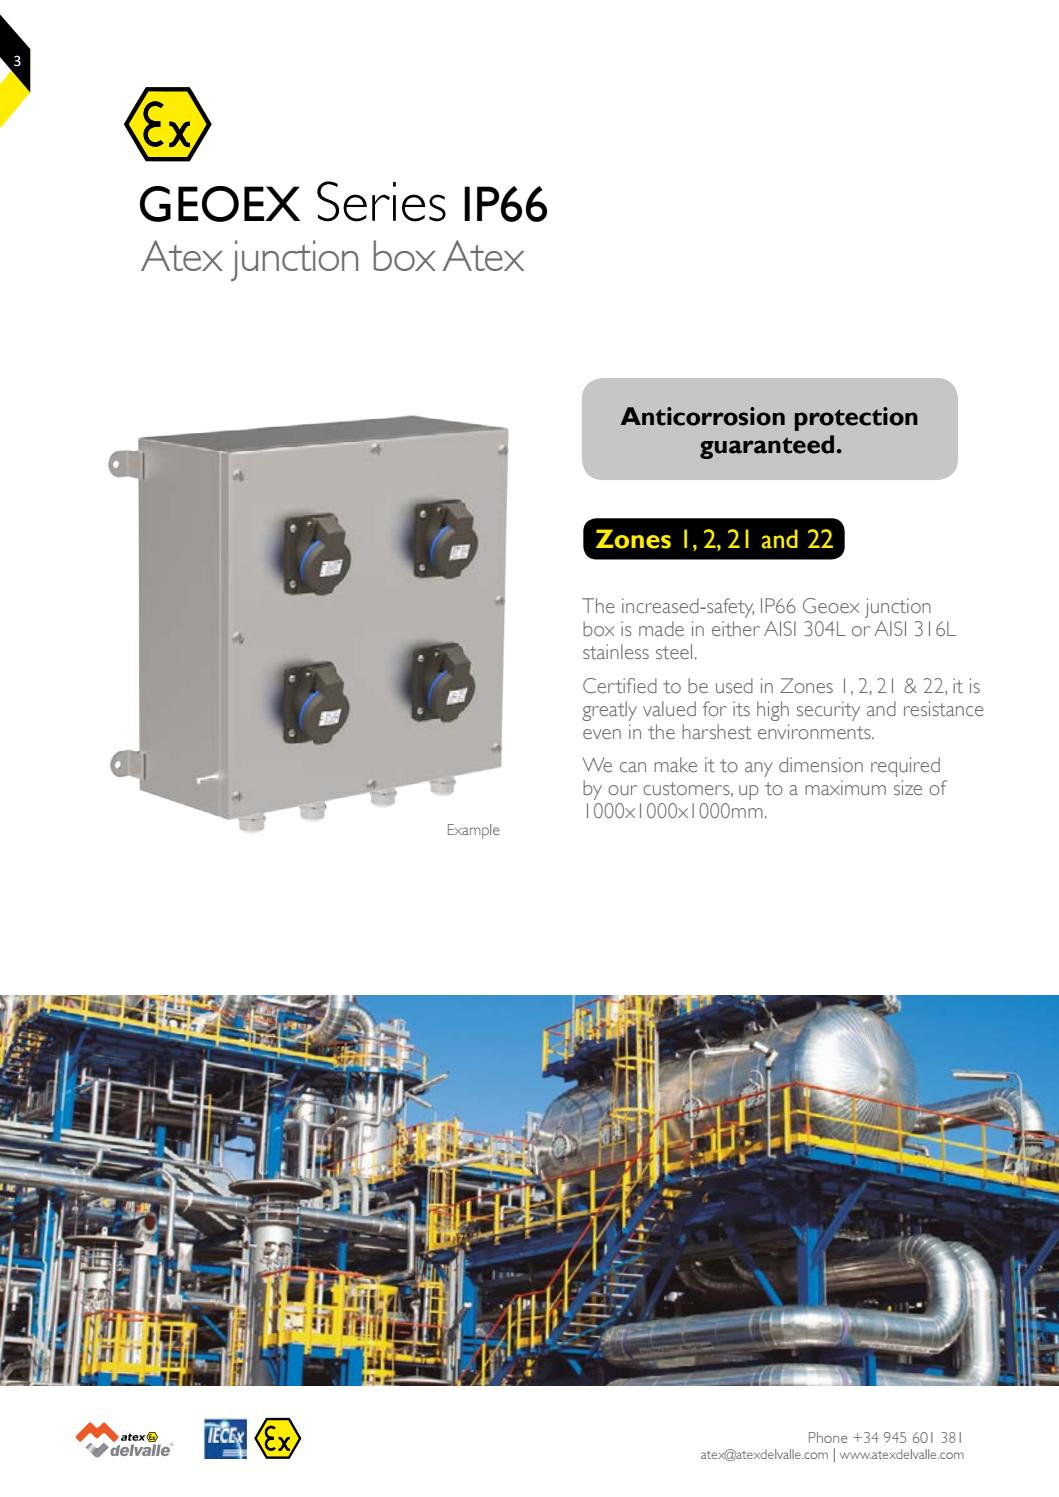 Geoex Series ATEX junction box Delvalle Atex v 1 1-16 by